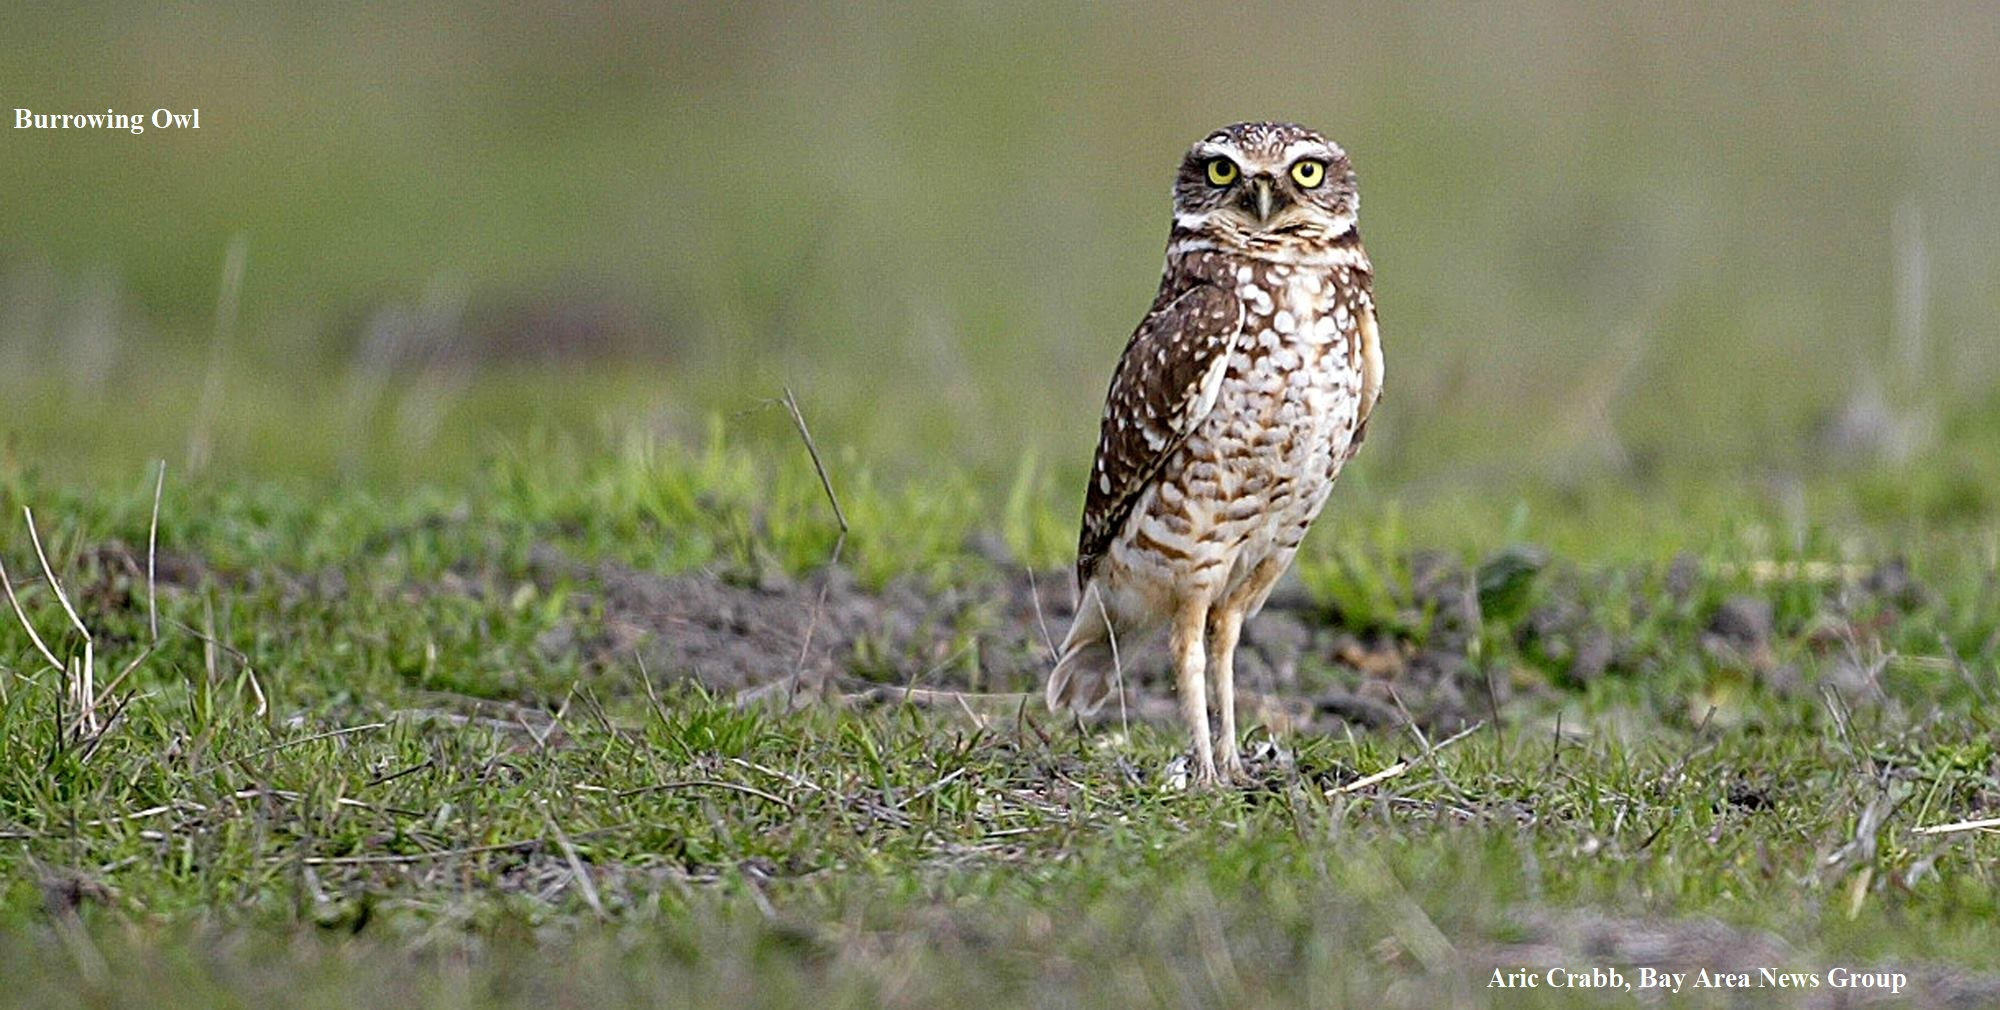 1 Burrowing Owl Bay Area News Group Aric Crabb